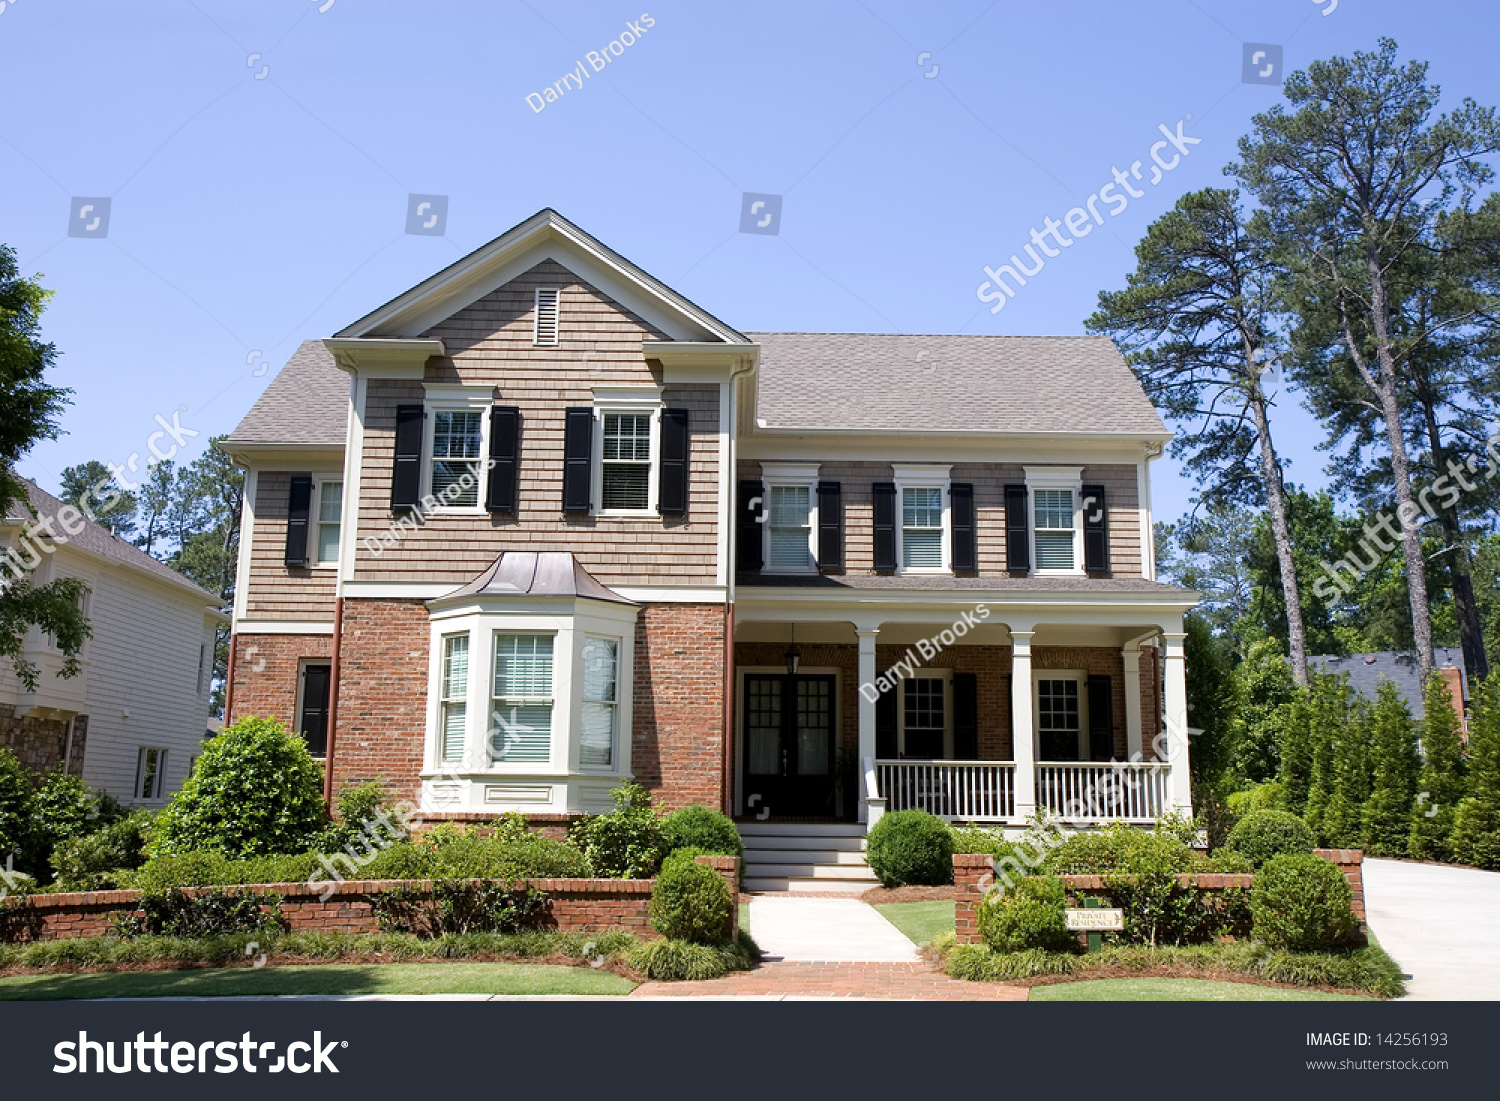 A Nice Traditional House Of Brick And Wood Stock Photo